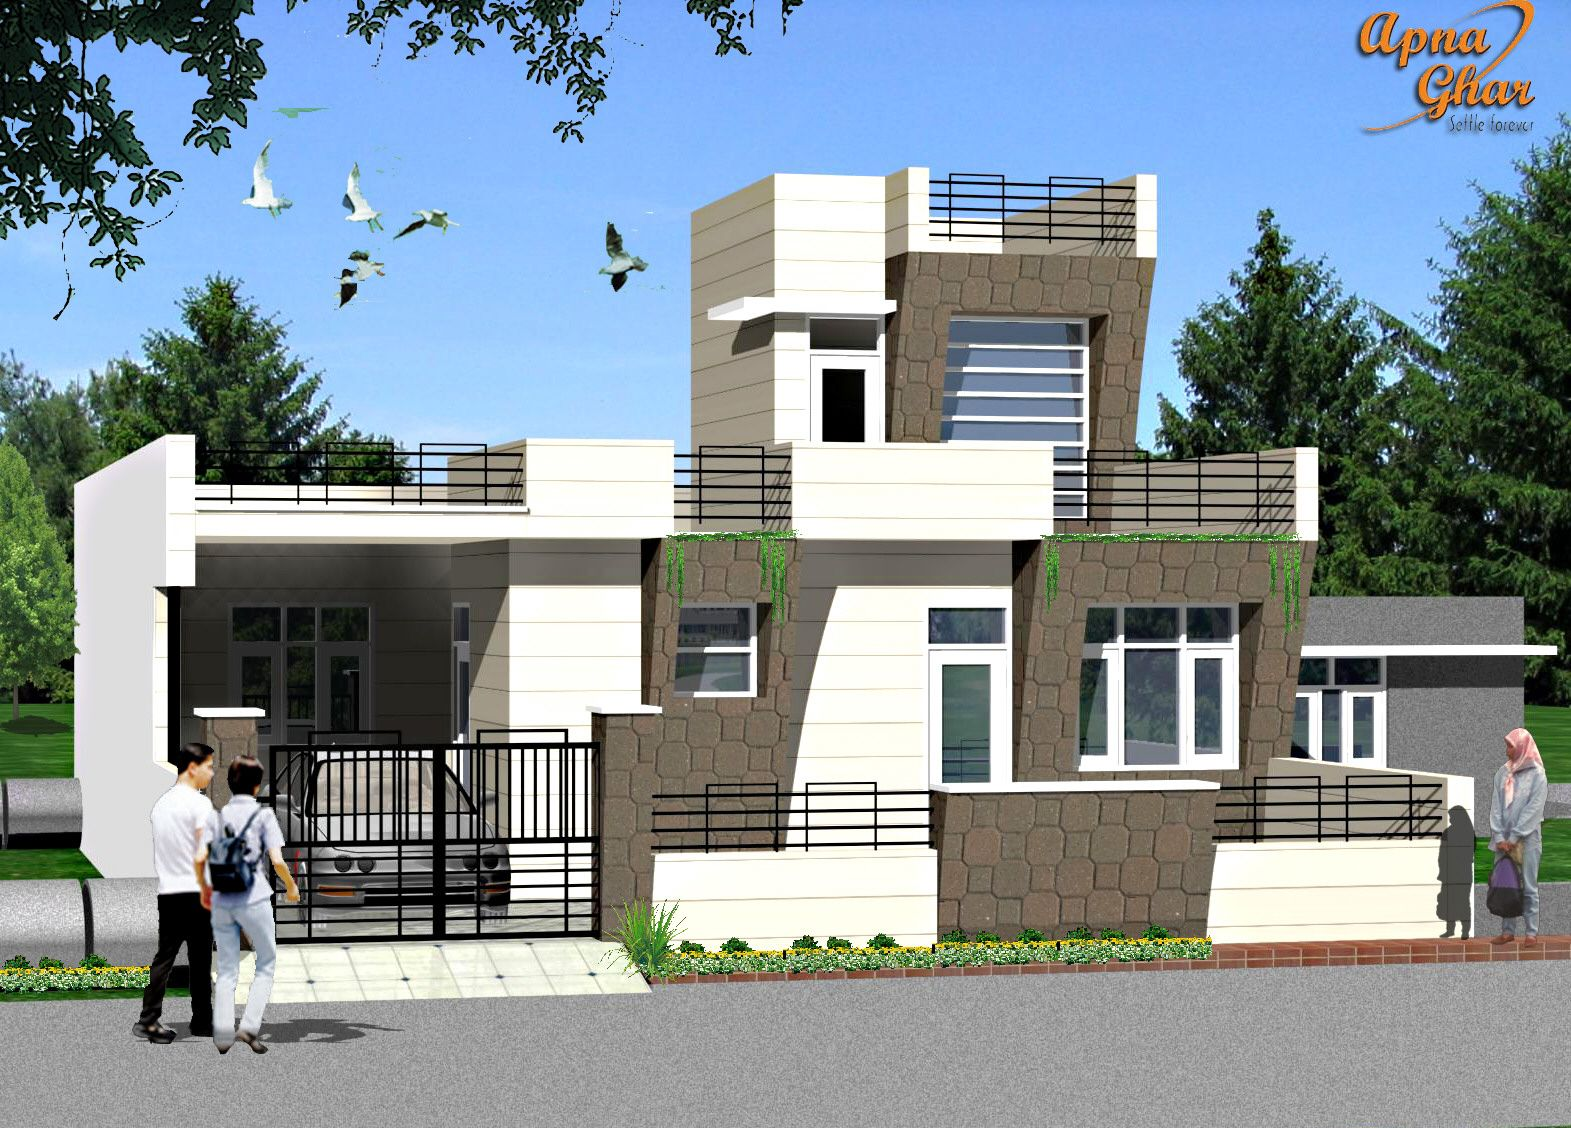 3 bedroom modern simplex 1 floor house design area Home exterior front design